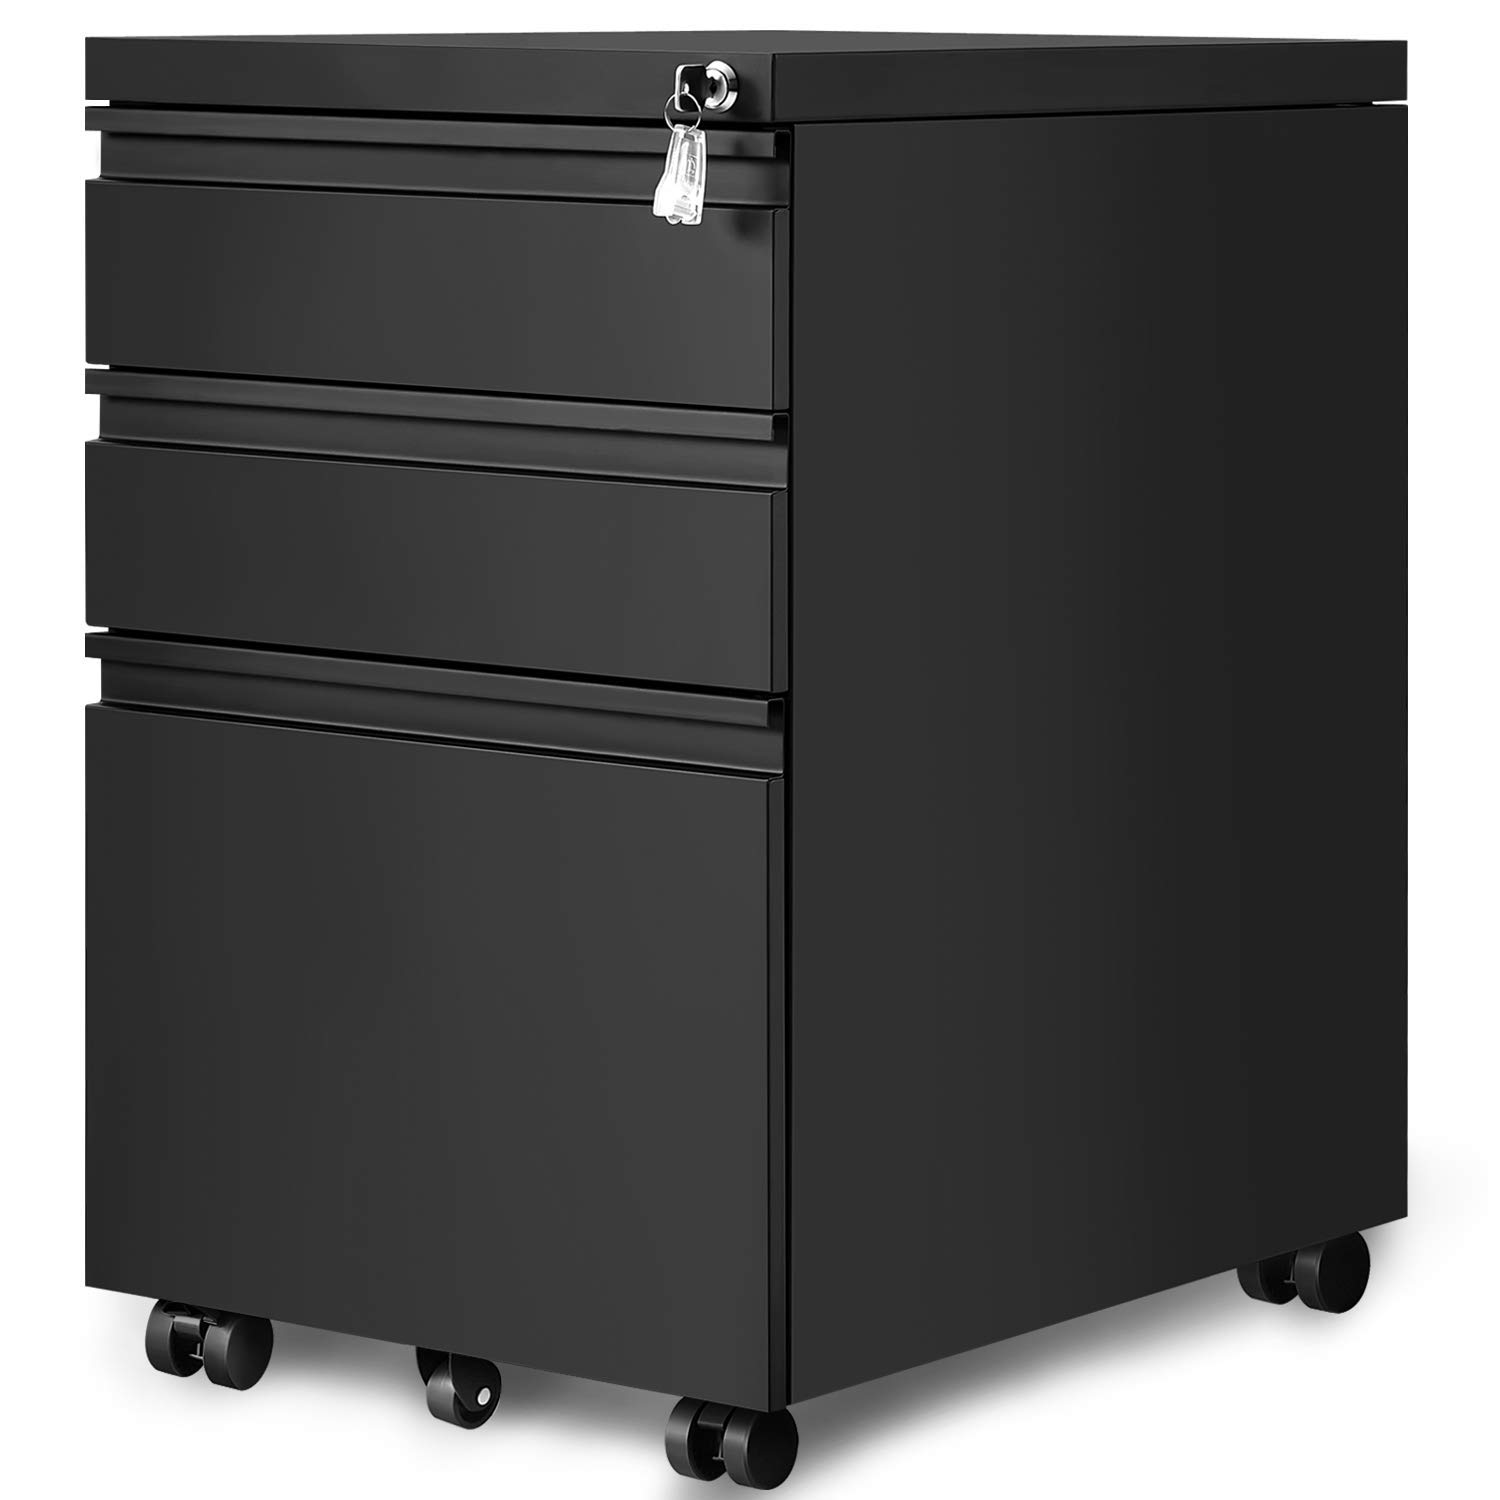 File Cabinet Locking 3-Drawer Rolling Under Desk Metal Filing Cabinet Fully Assembled Except Wheels (Black) by Yiguo